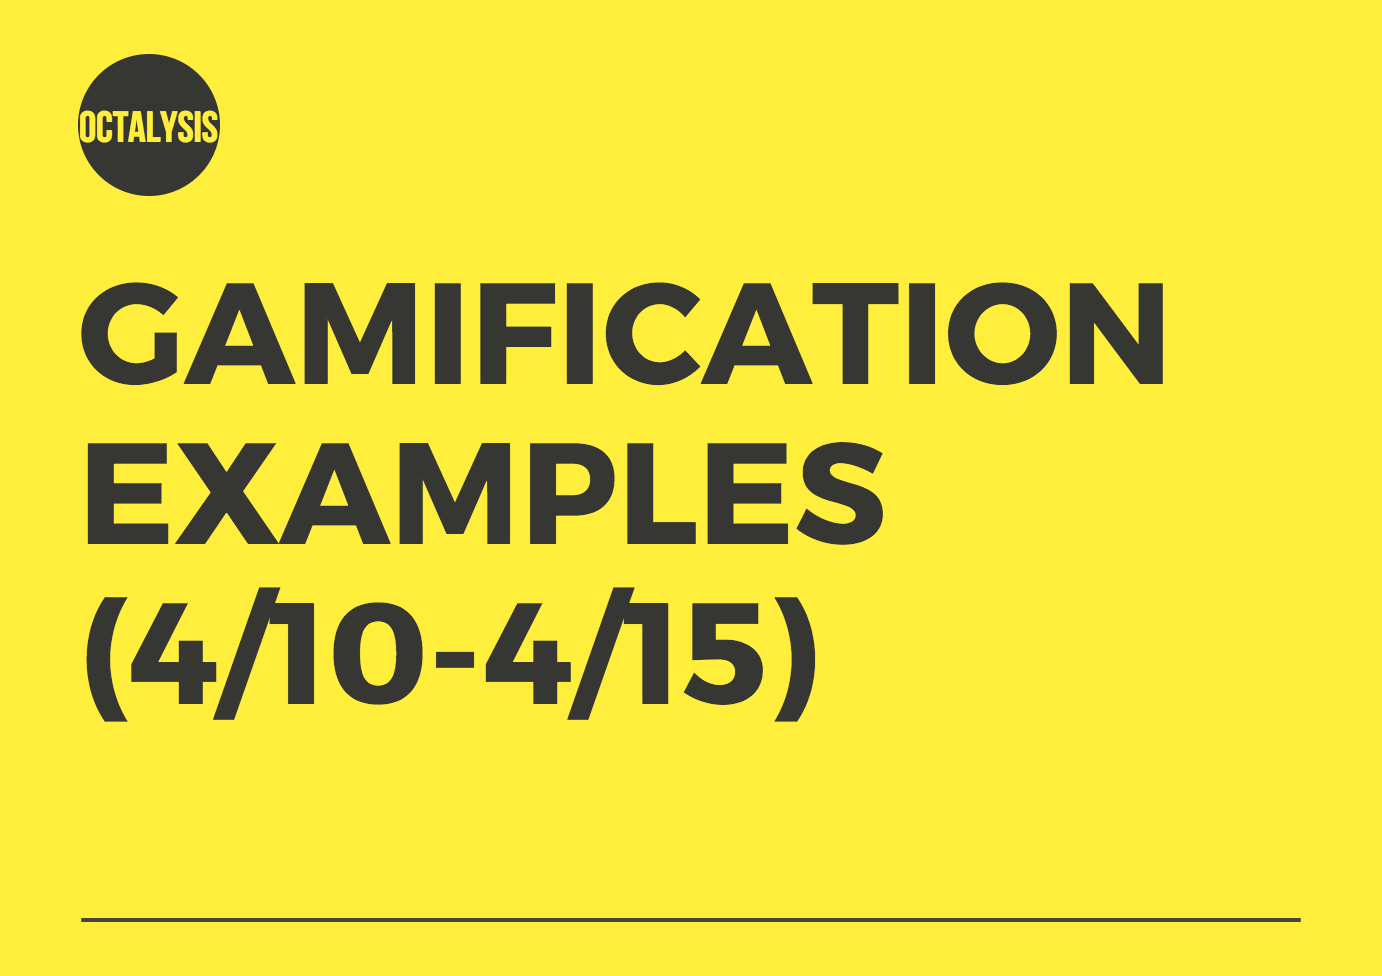 Gamification Examples for April Week 2